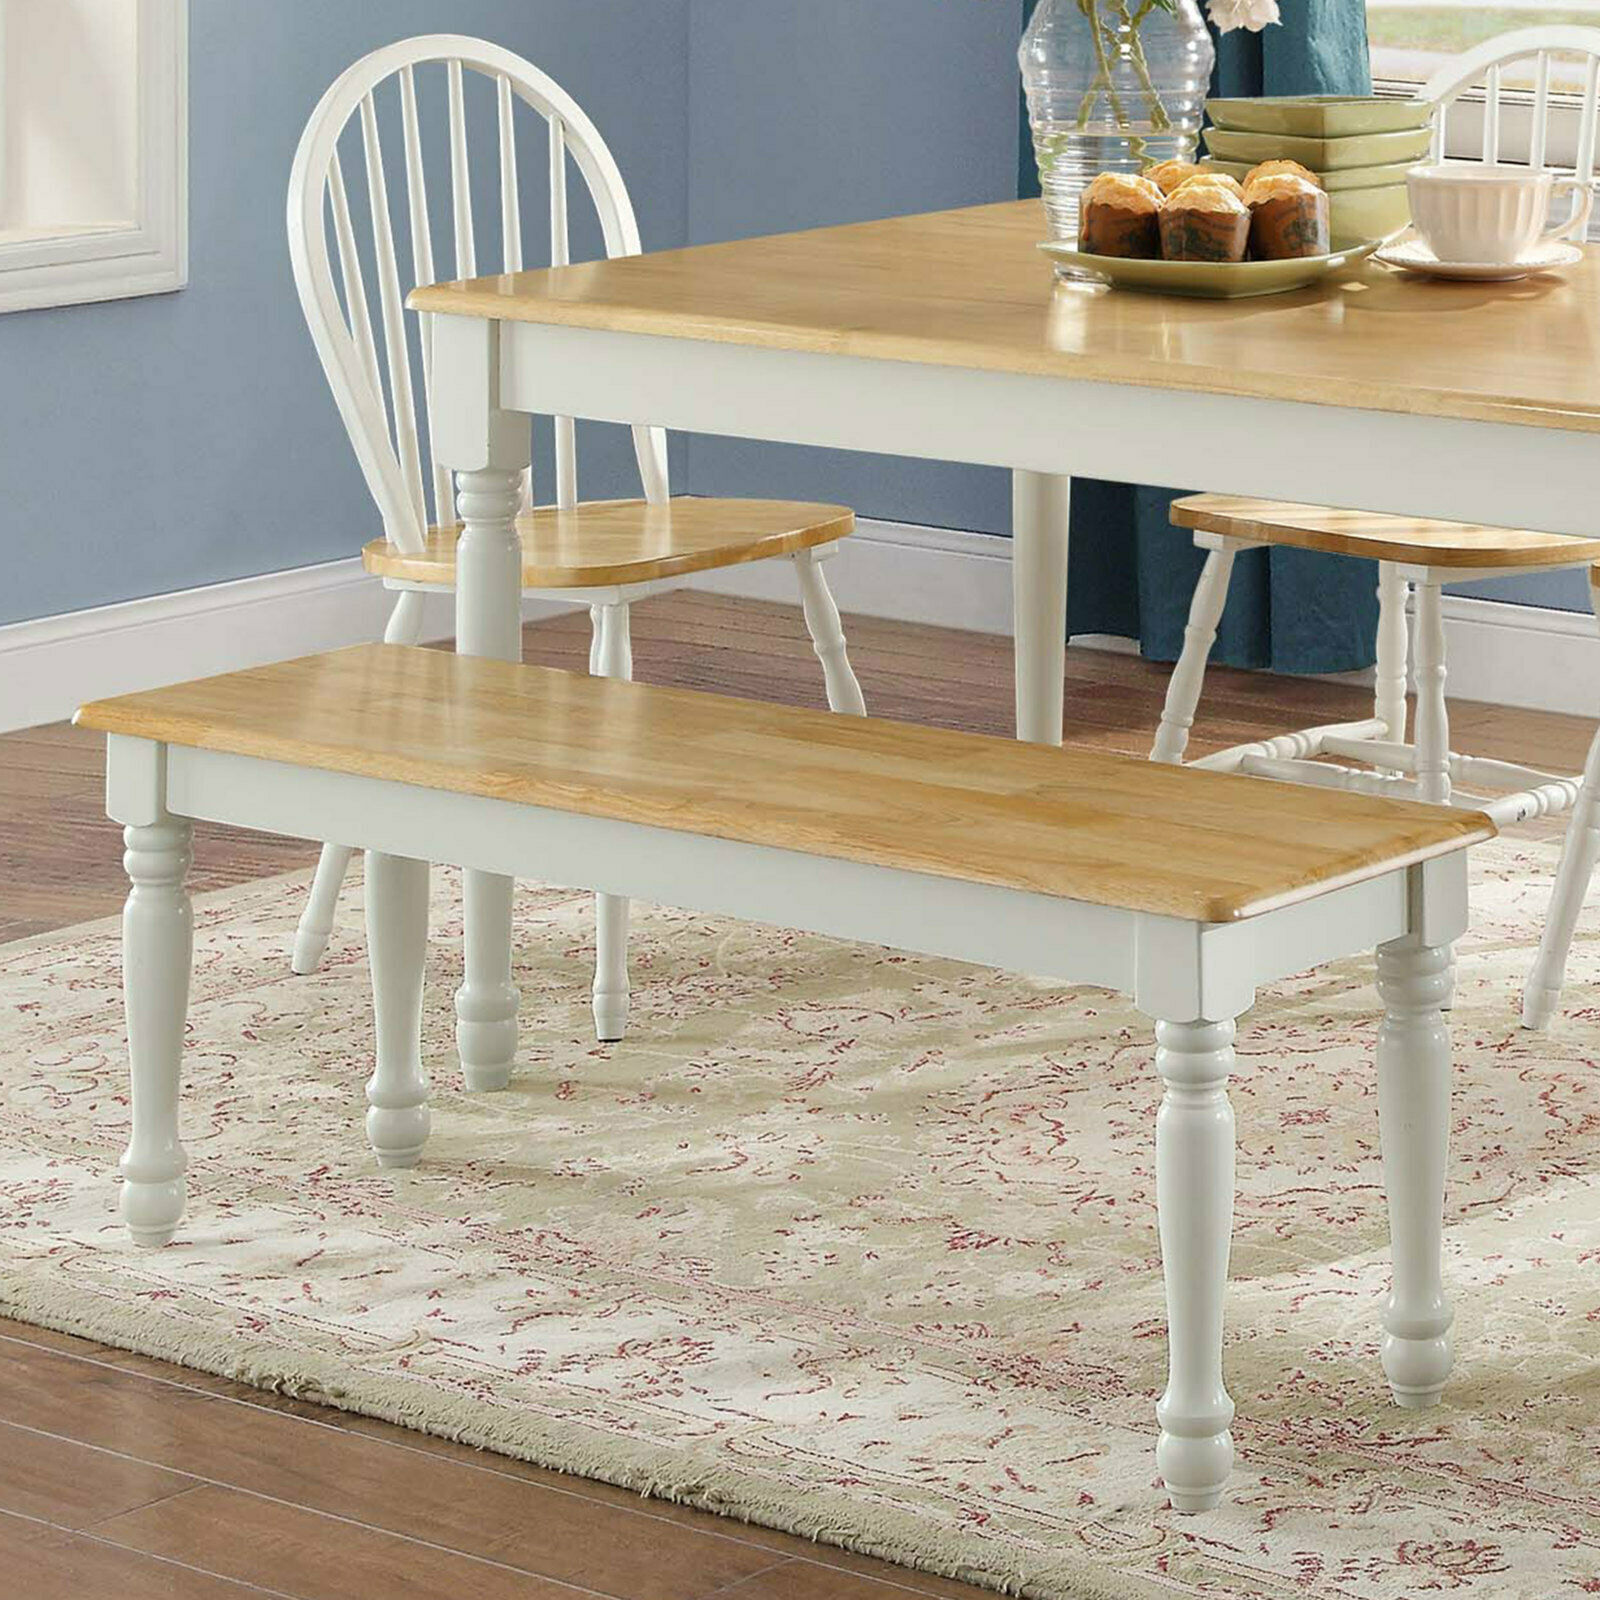 Dressing De Coin Ikea better homes & gardens autumn lane farmhouse solid wood dining bench, white  and